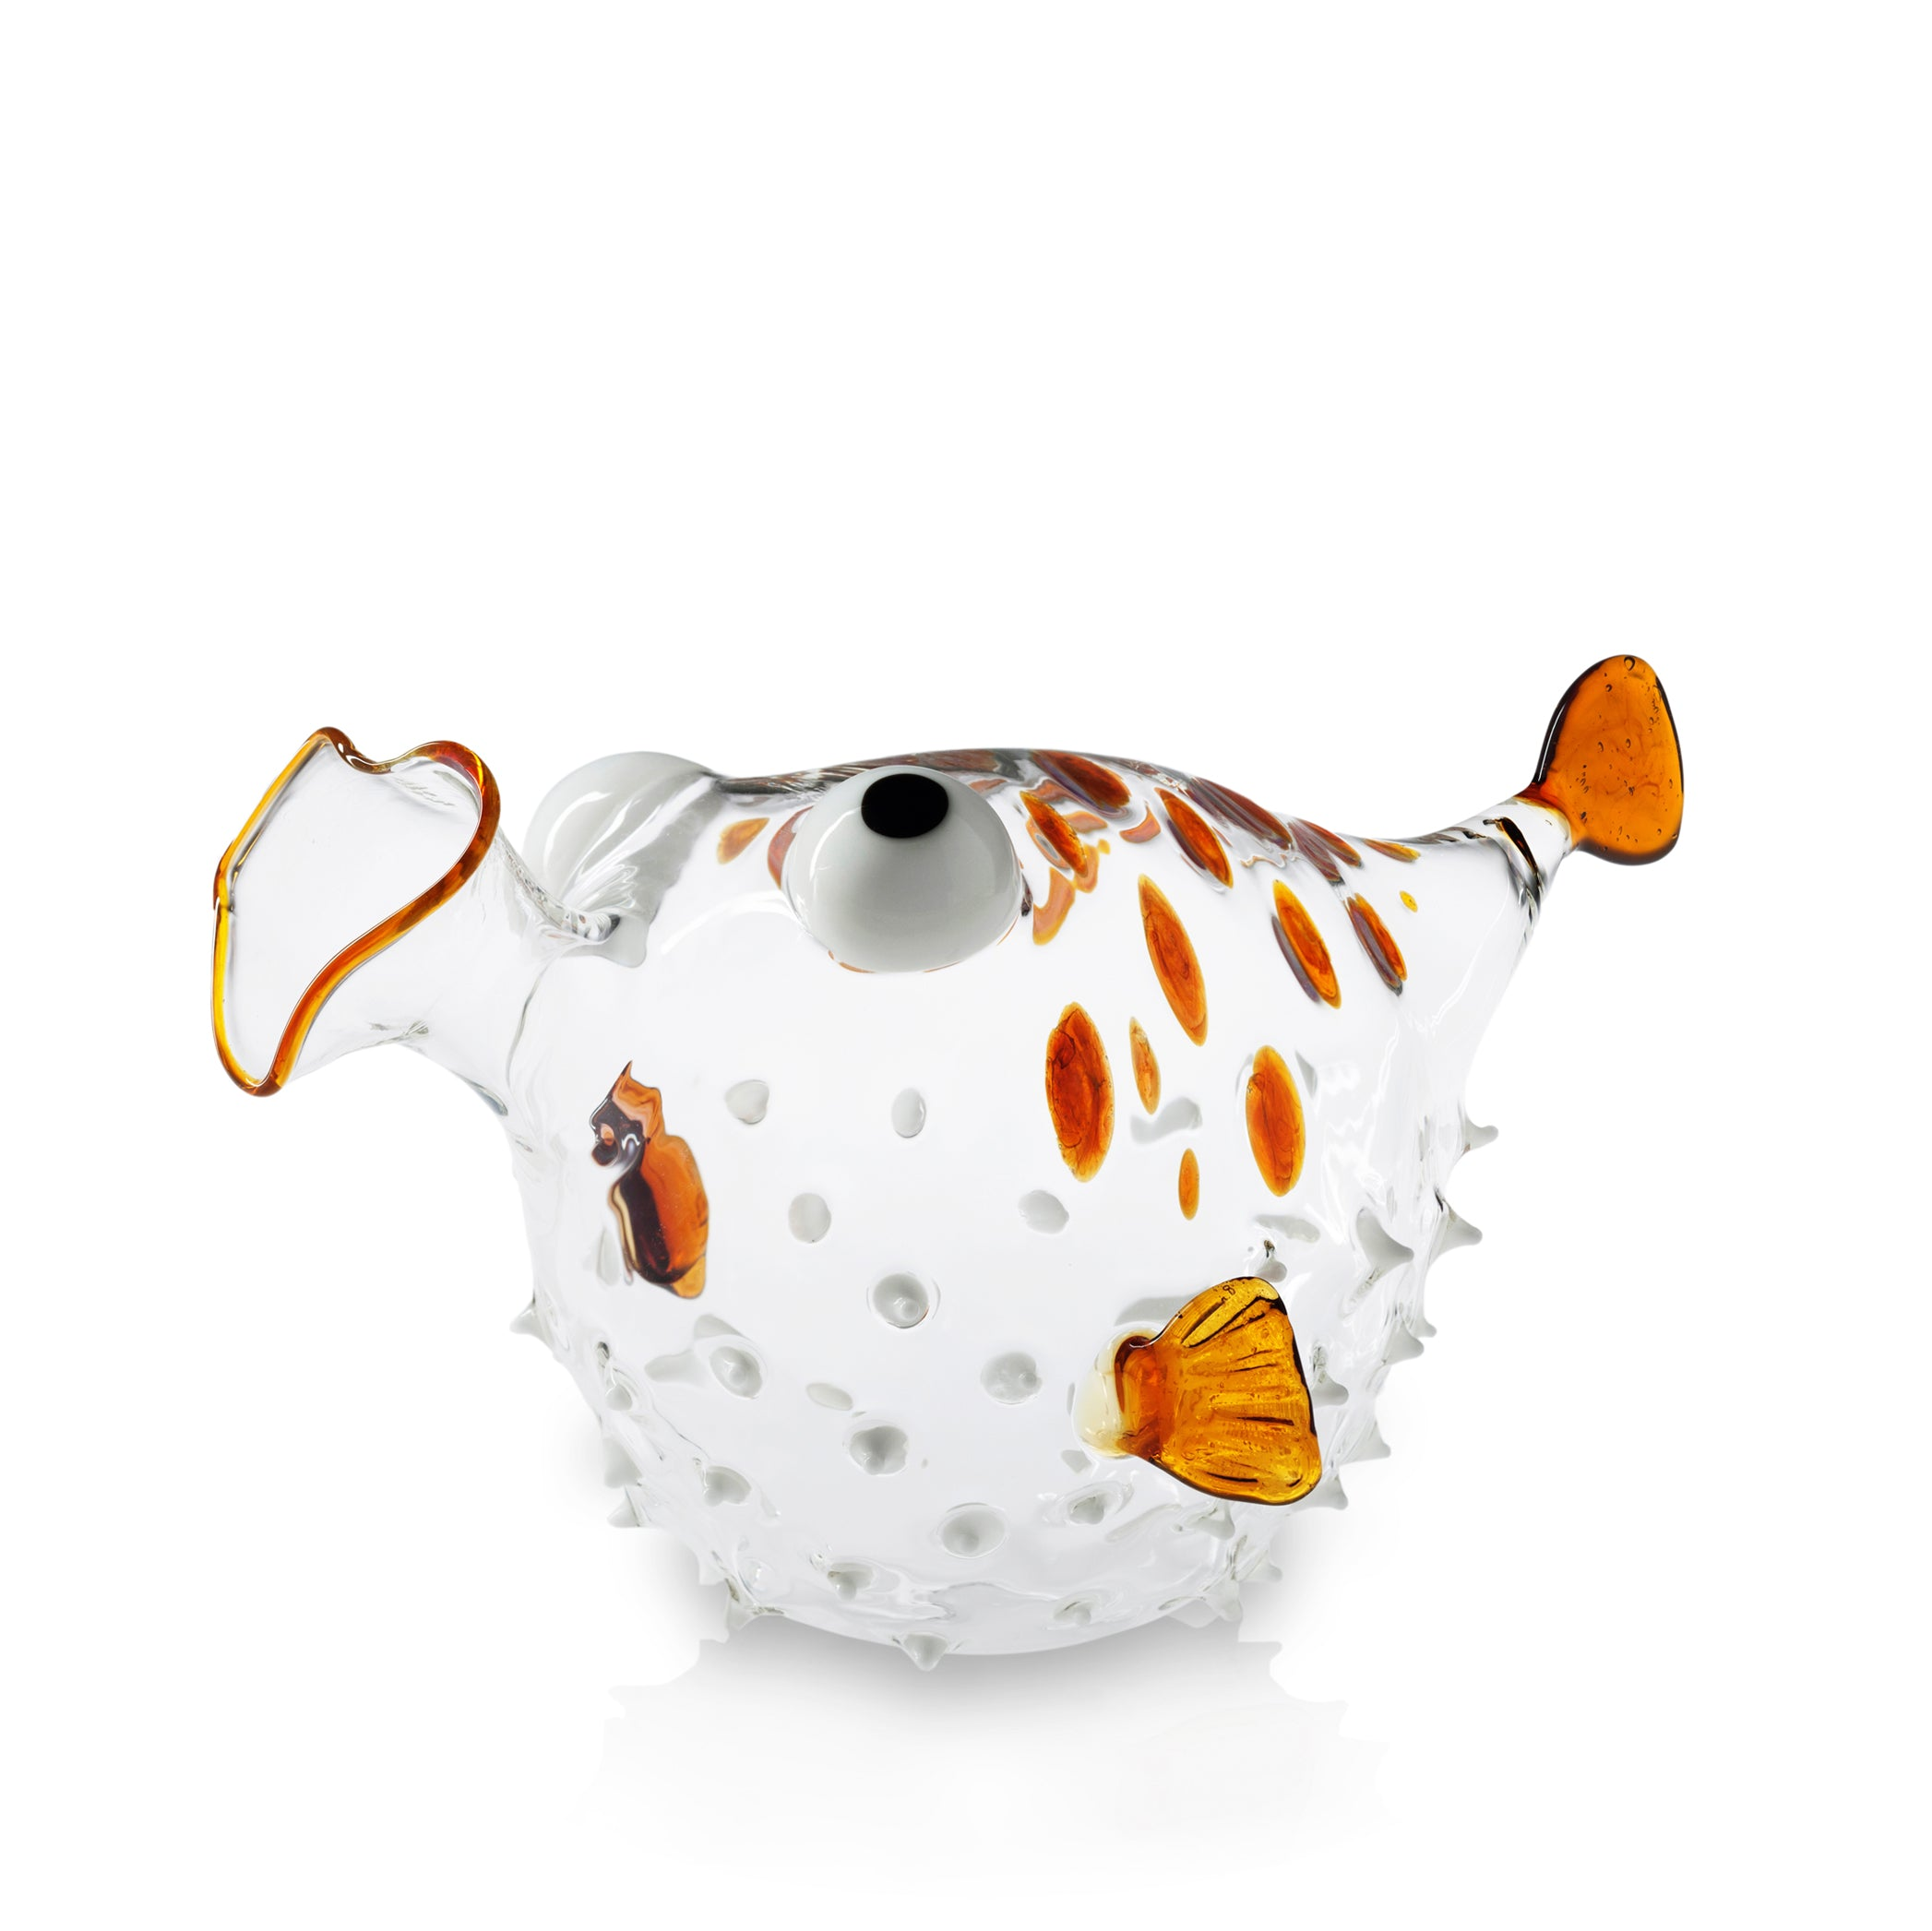 Handblown Glass Puffer Fish Decanter